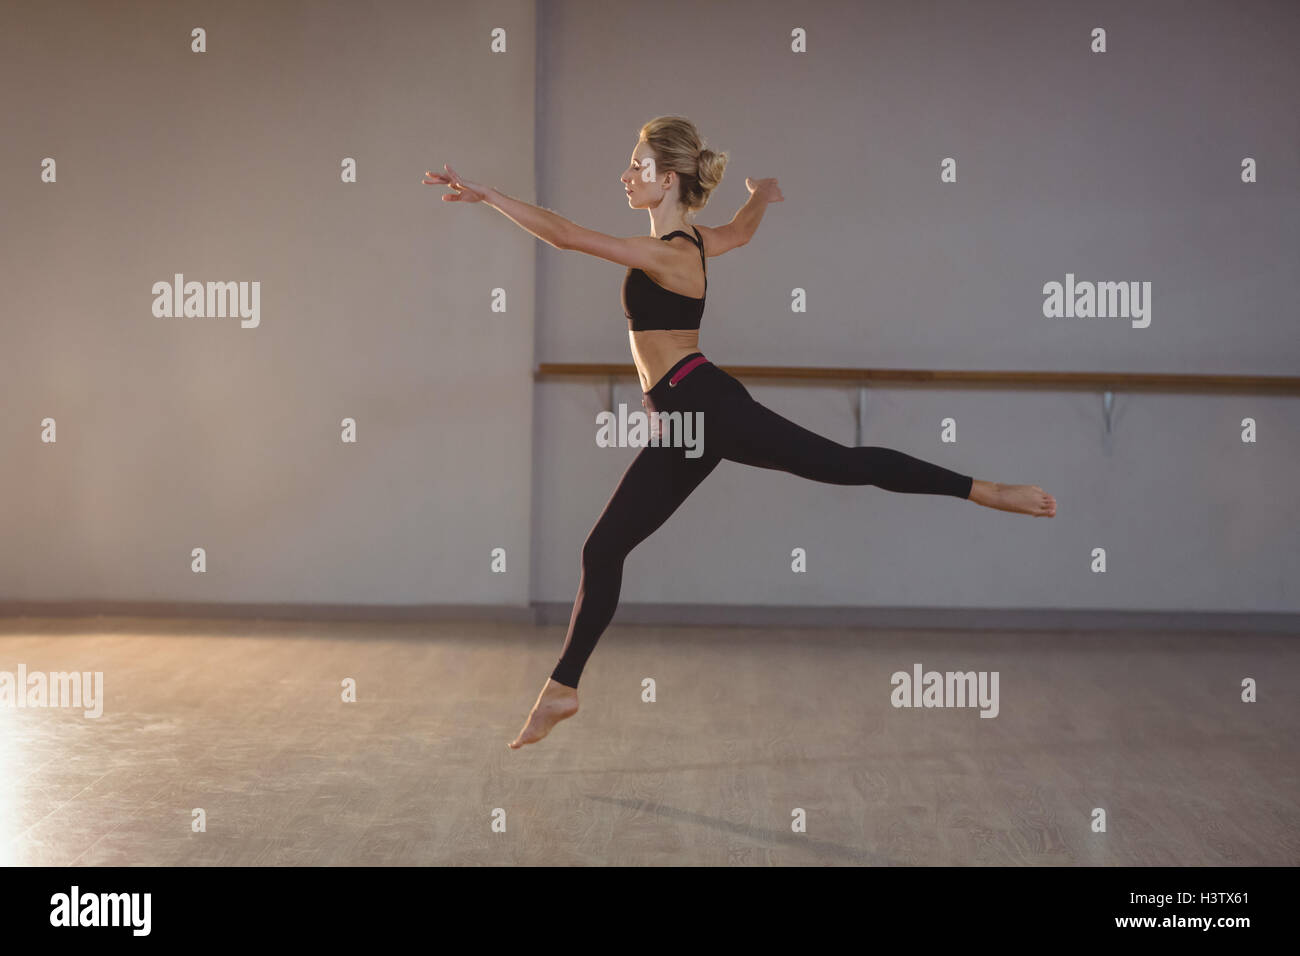 Woman leaping while performing stretching exercise - Stock Image